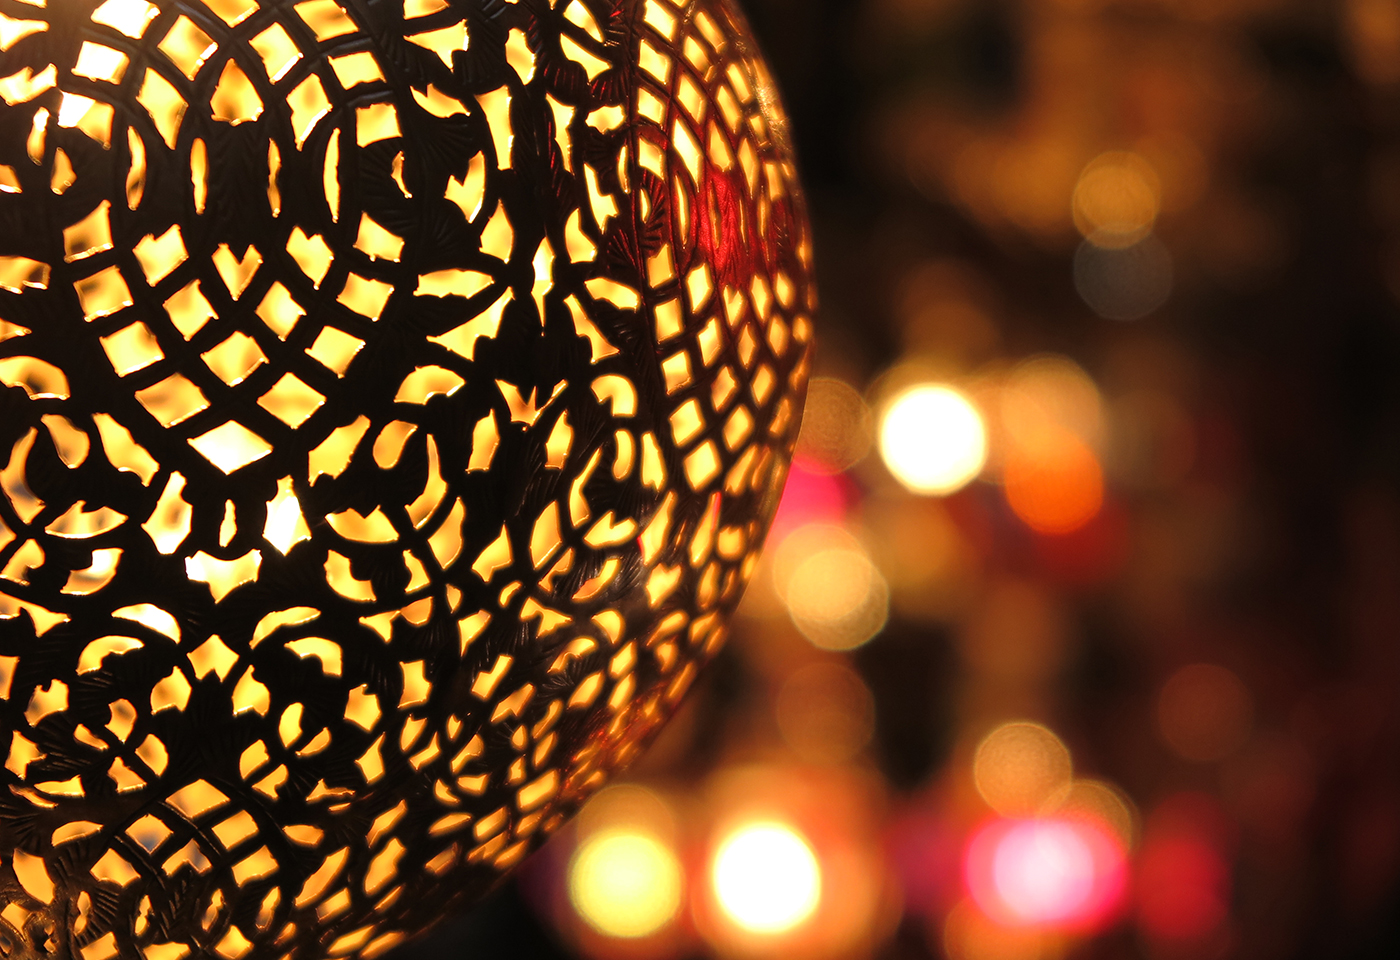 Decorative light, with background bokeh